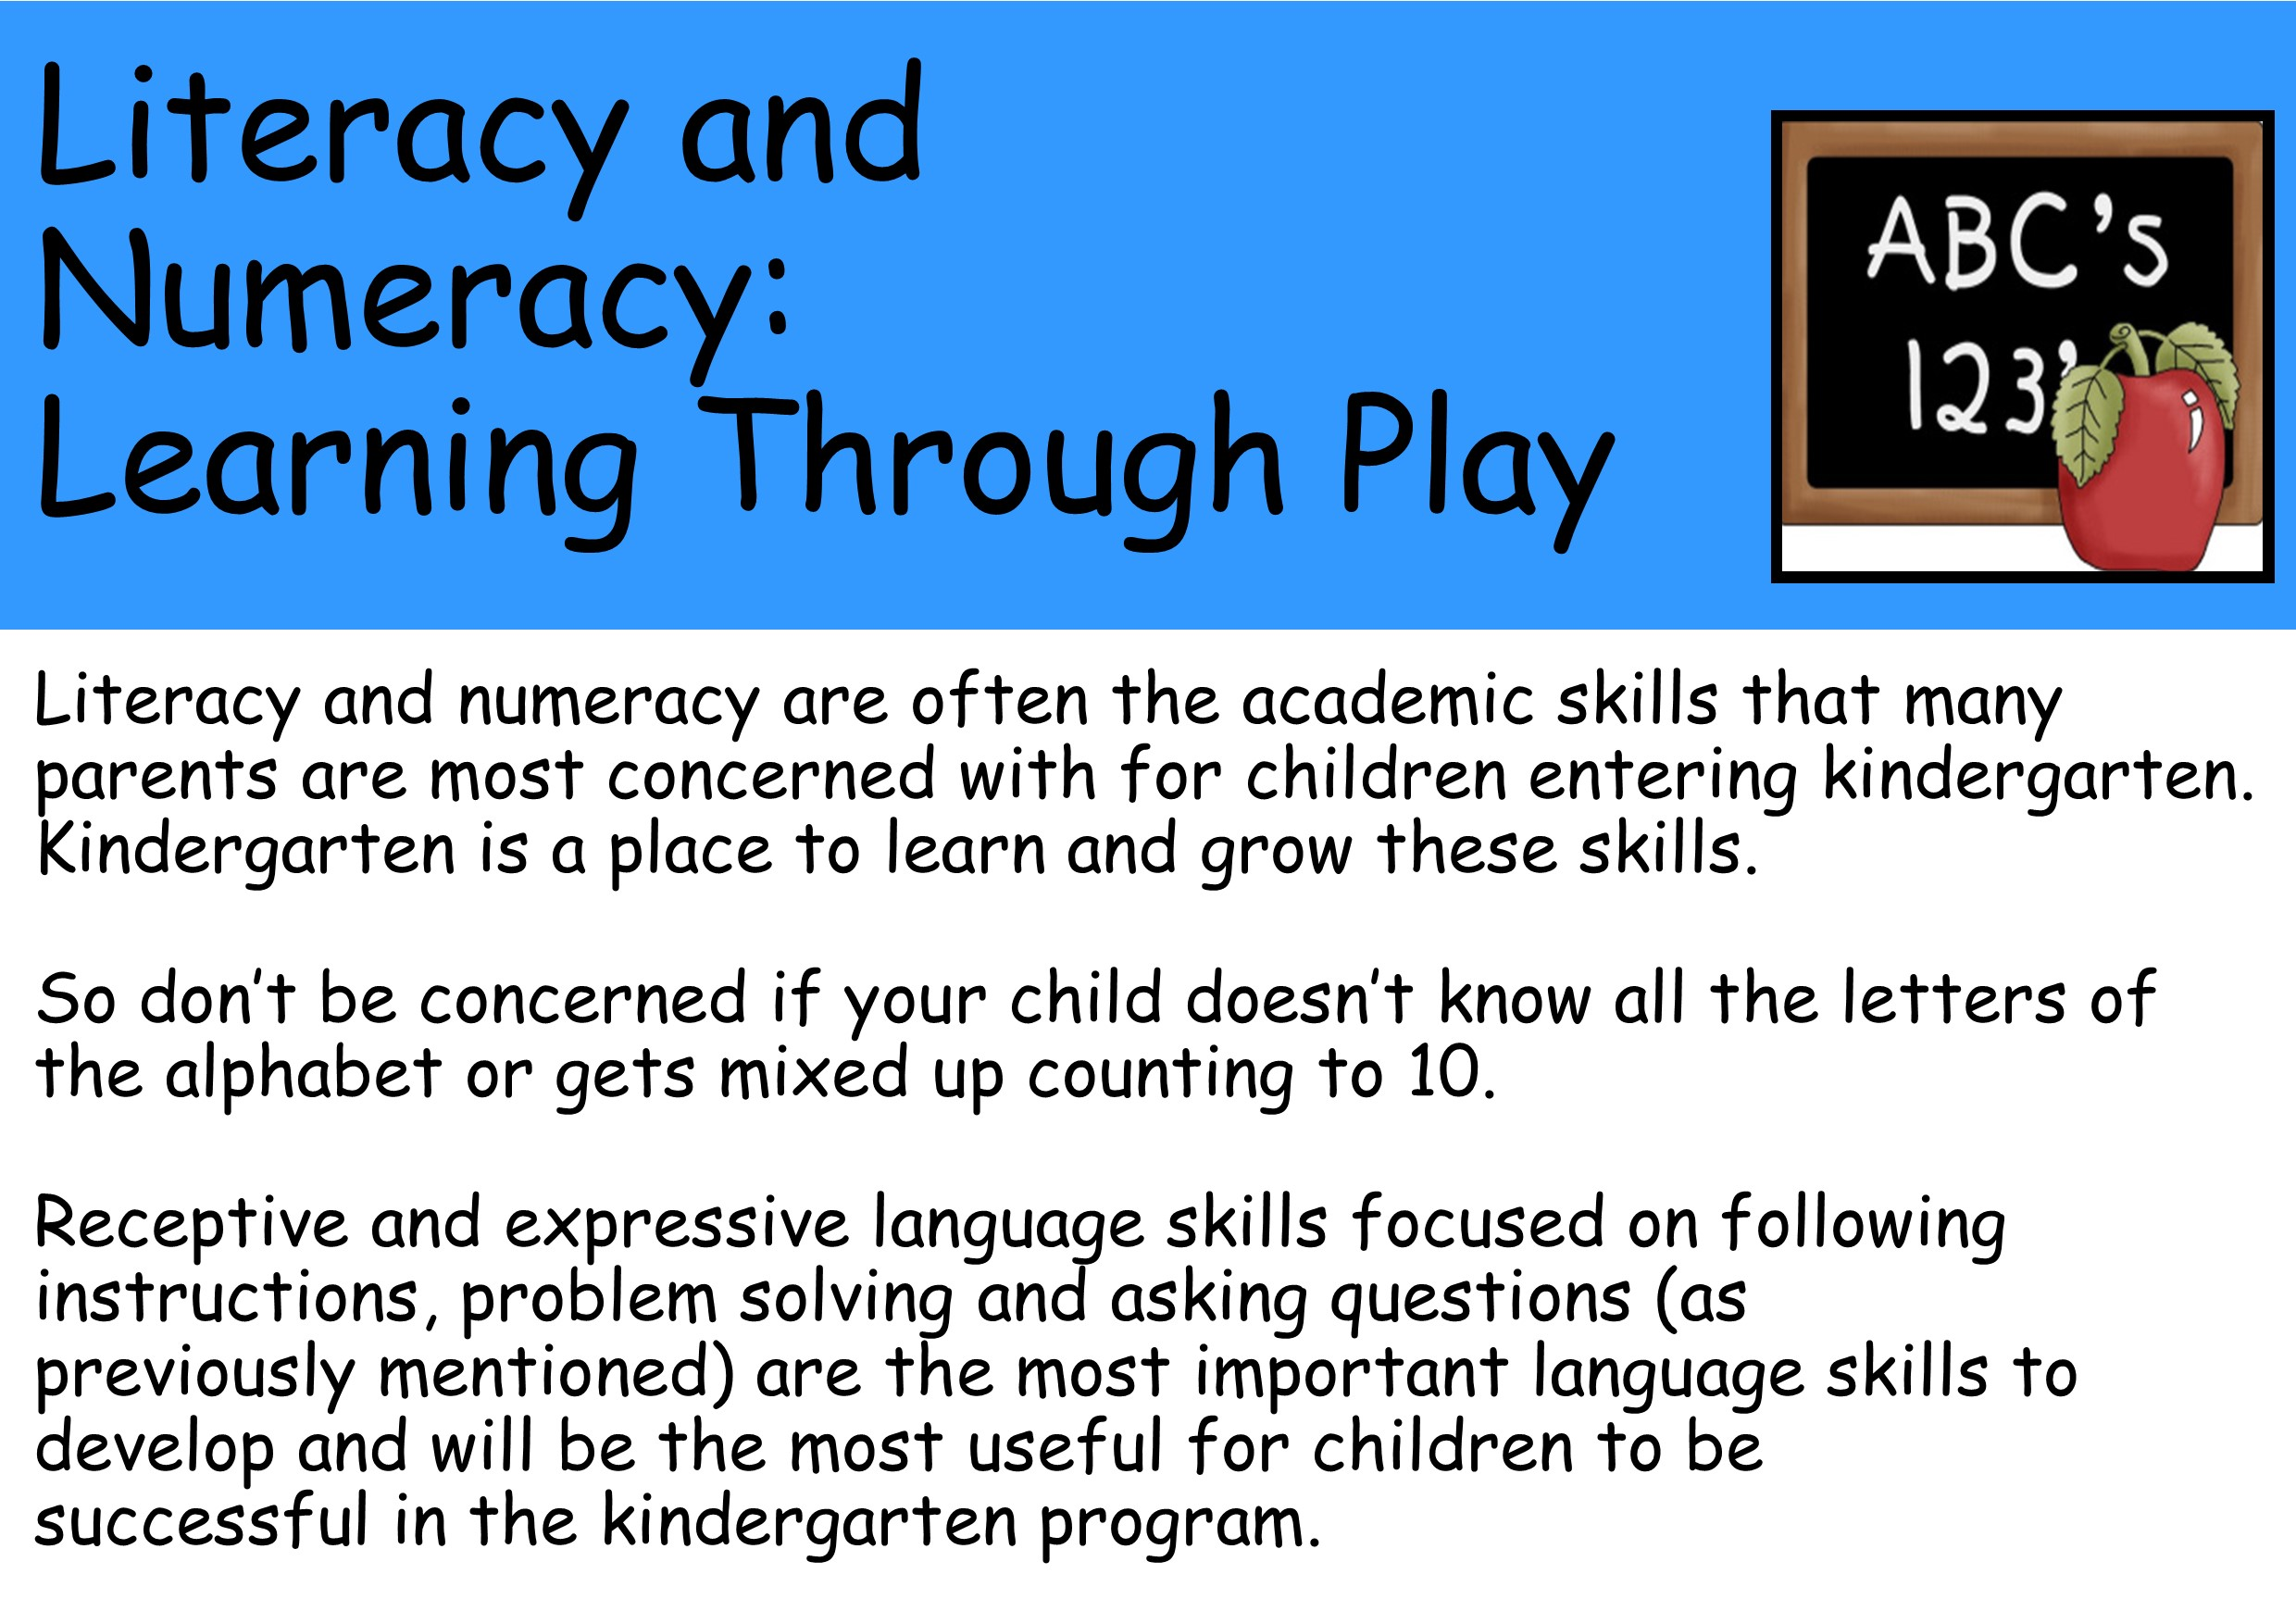 Literacy and numeracy: learning through play